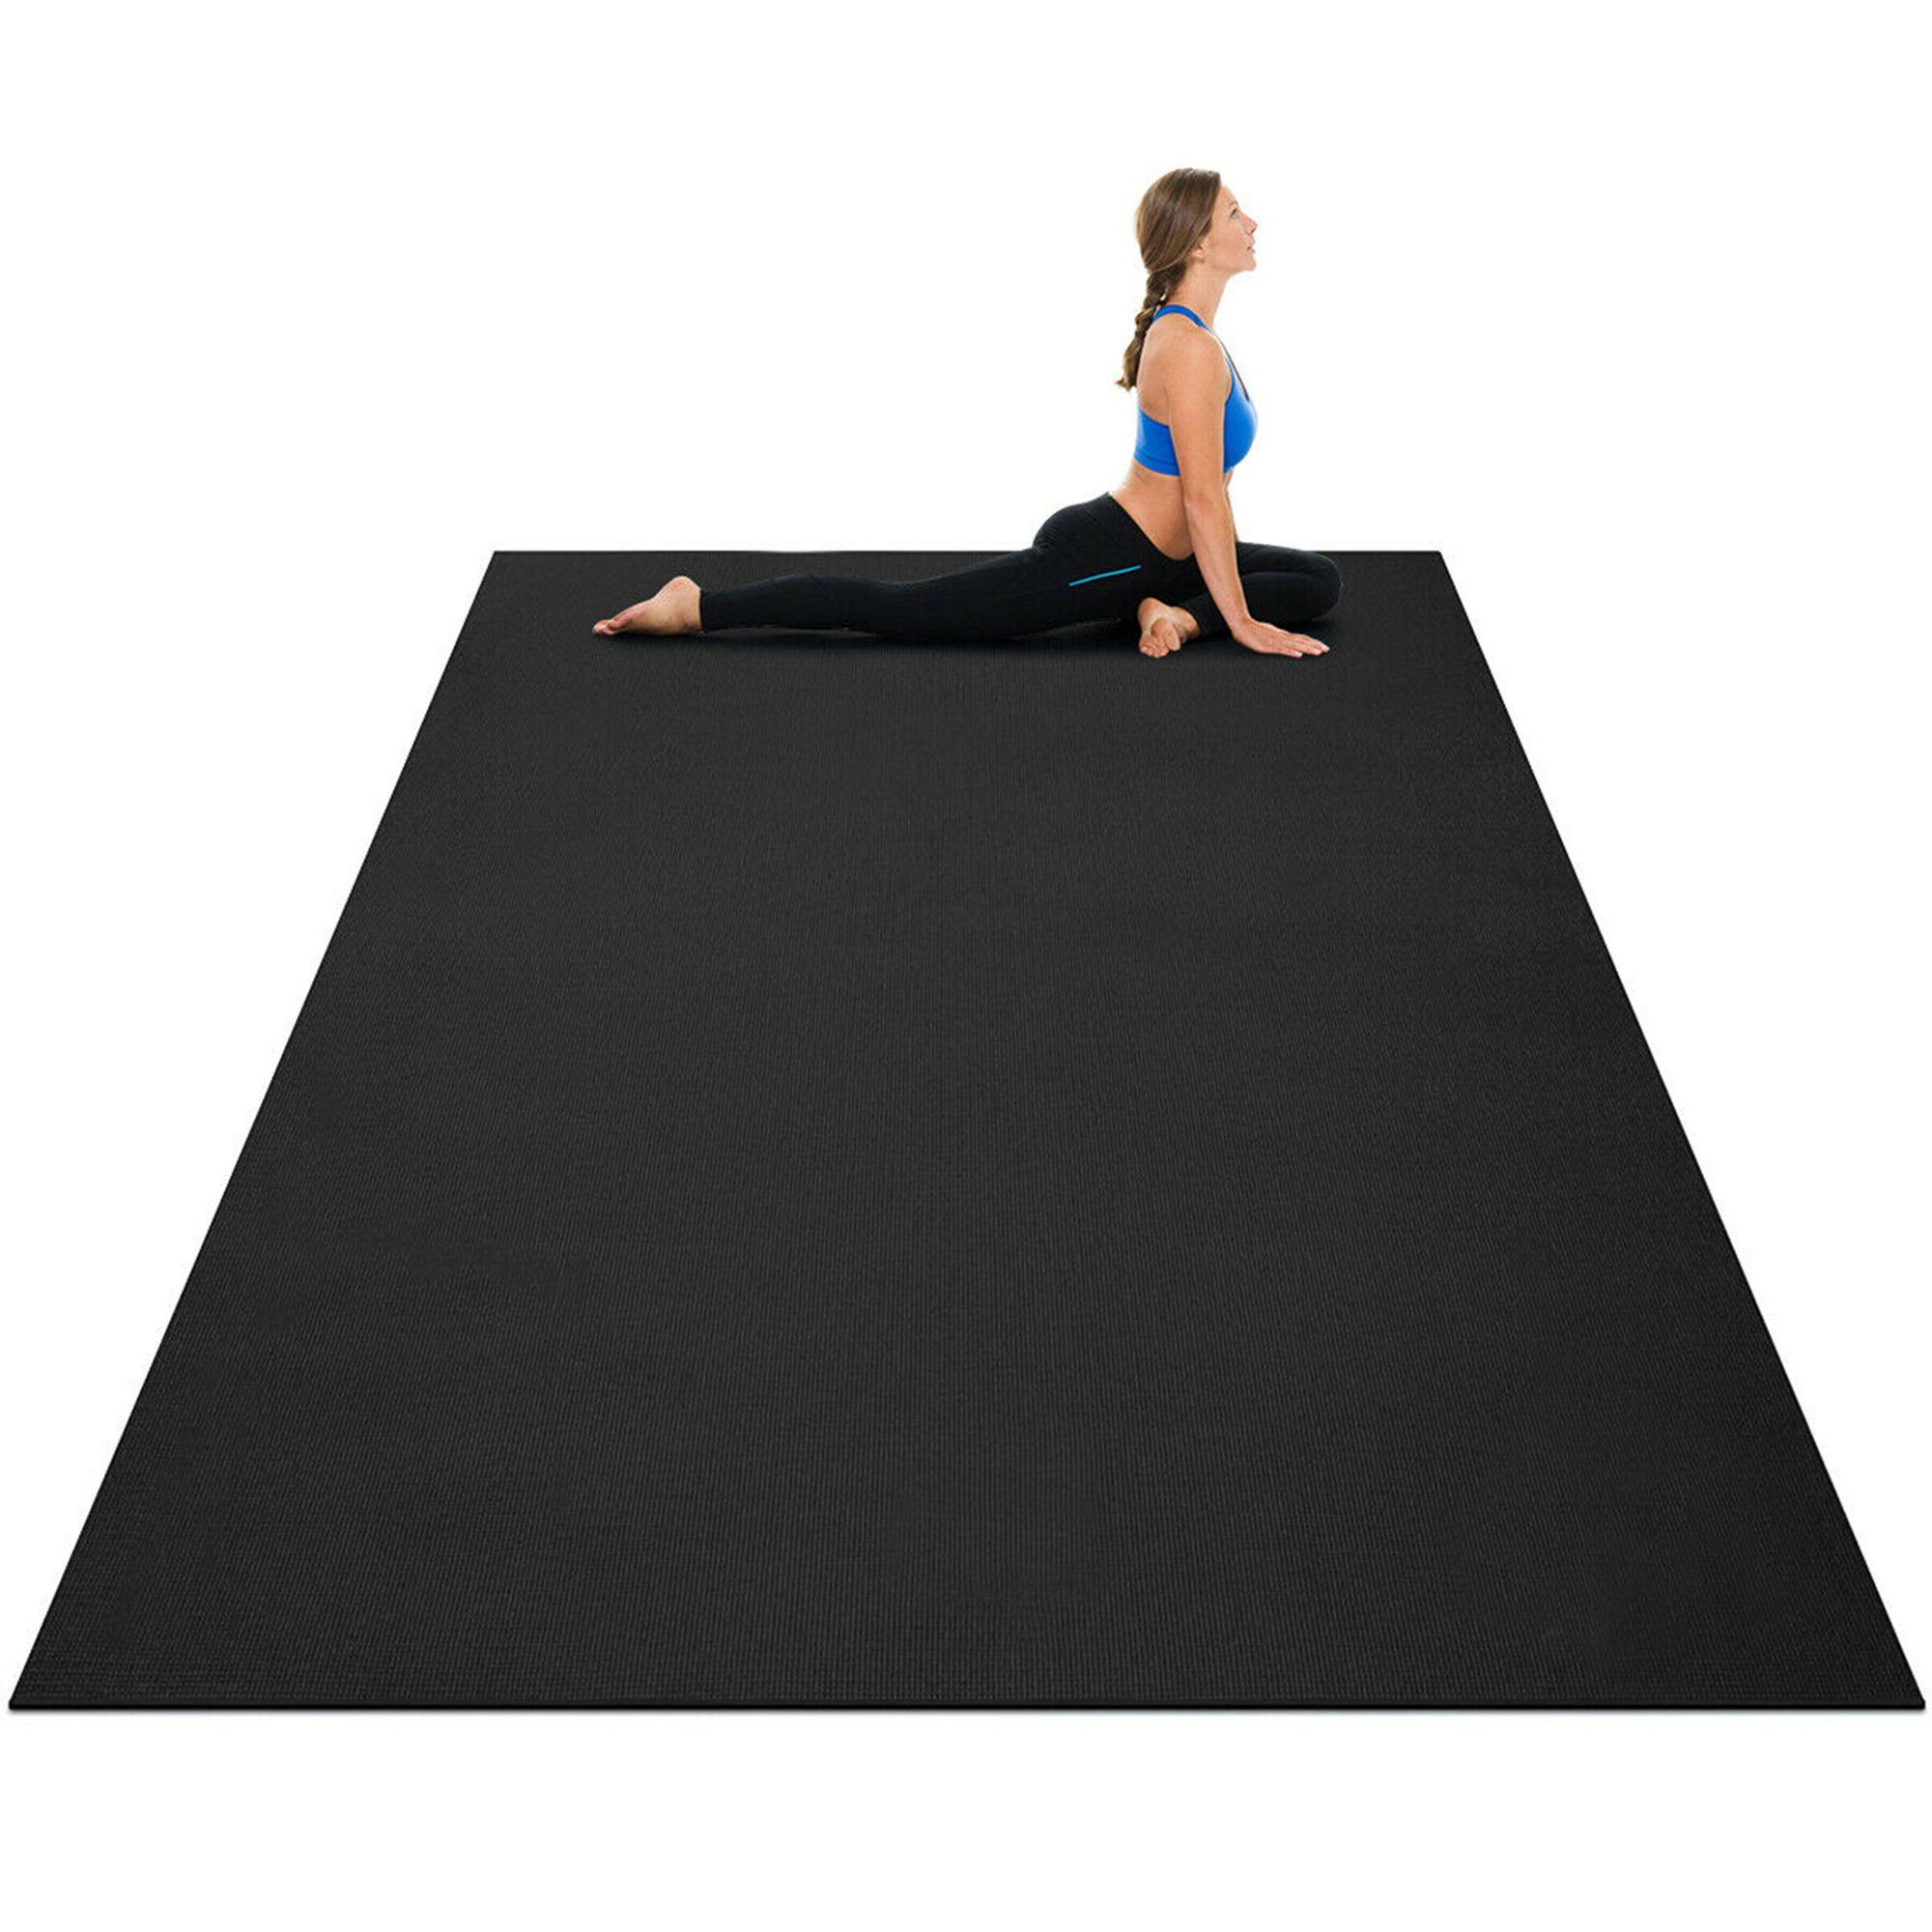 Gymax Large Yoga Mat 7 X 5 X 8 Mm Thick Workout Mats For Home Gym Flooring Walmart Com Walmart Com In 2020 Large Yoga Mat Thick Exercise Mat Gym Flooring